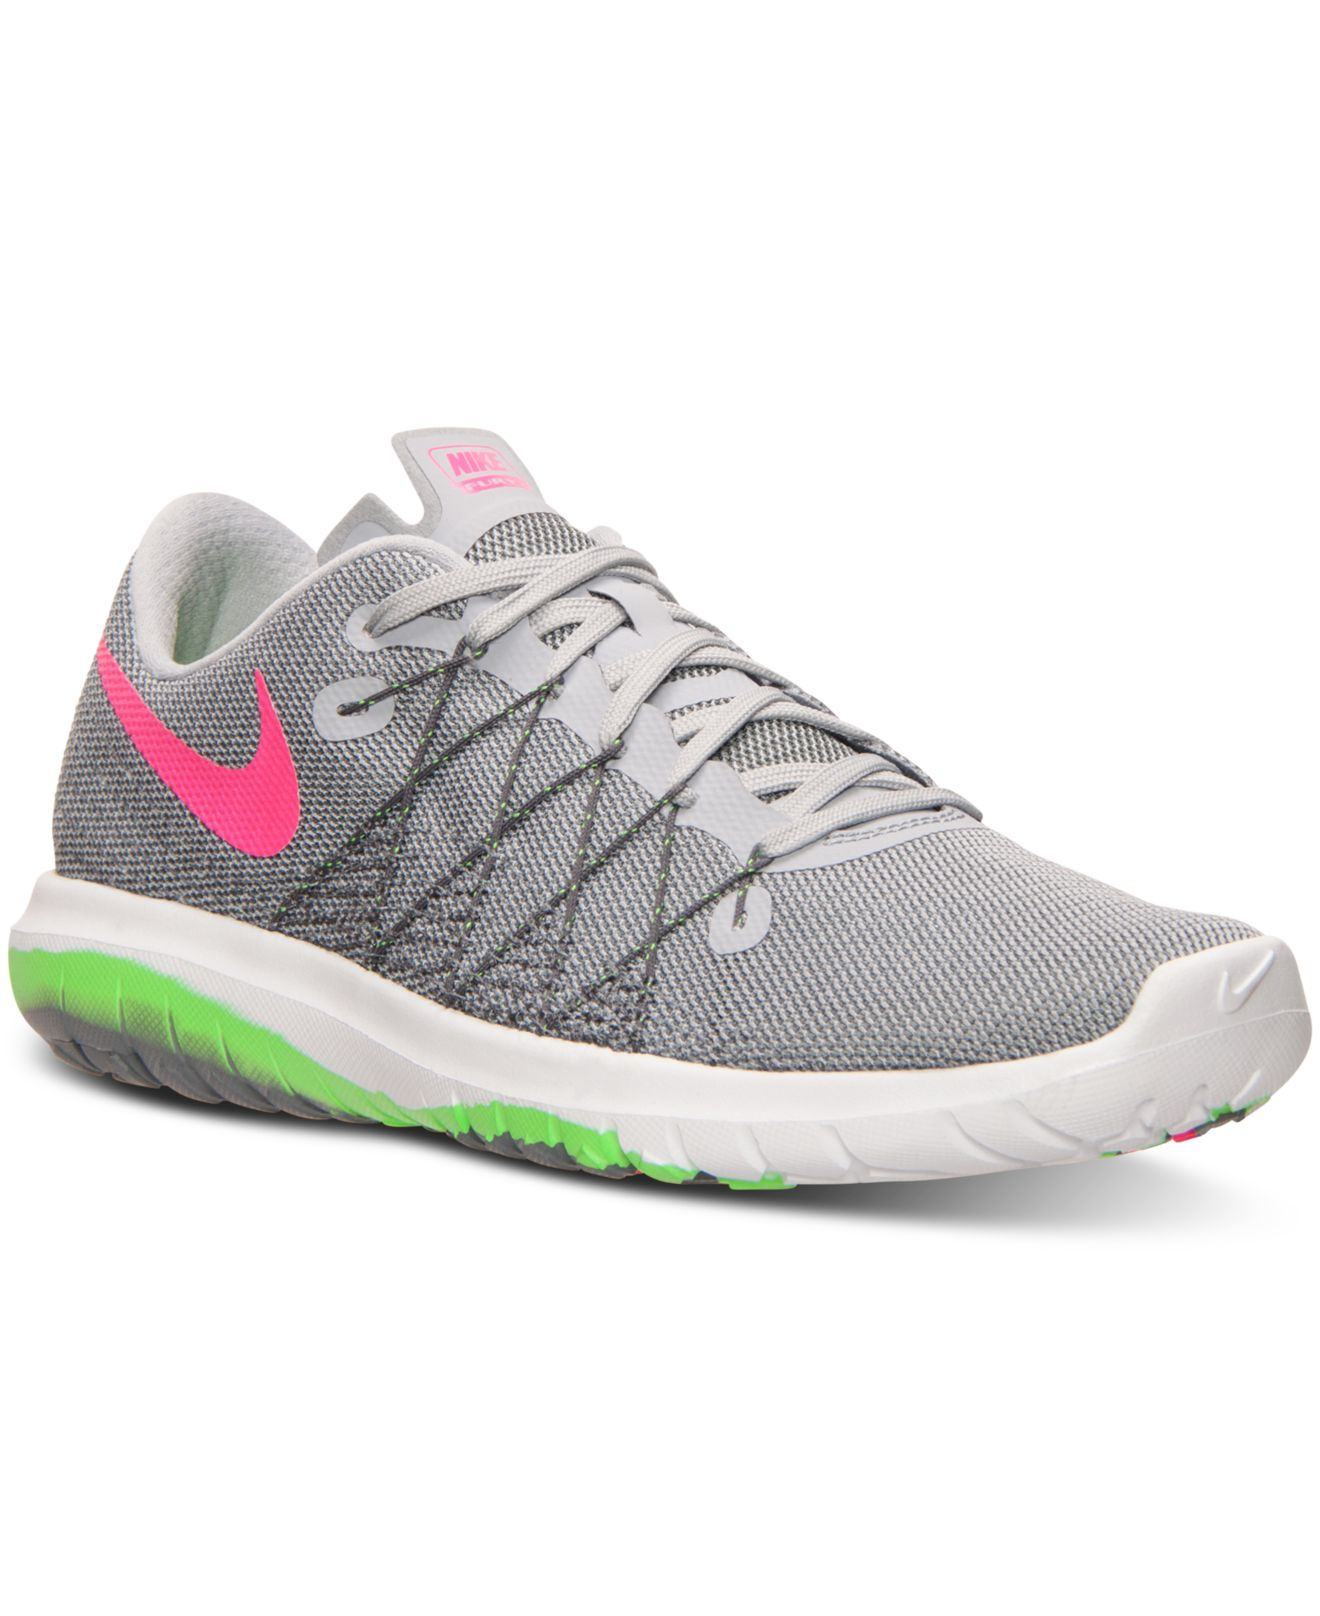 nike women 39 s flex fury 2 running sneakers from finish line. Black Bedroom Furniture Sets. Home Design Ideas